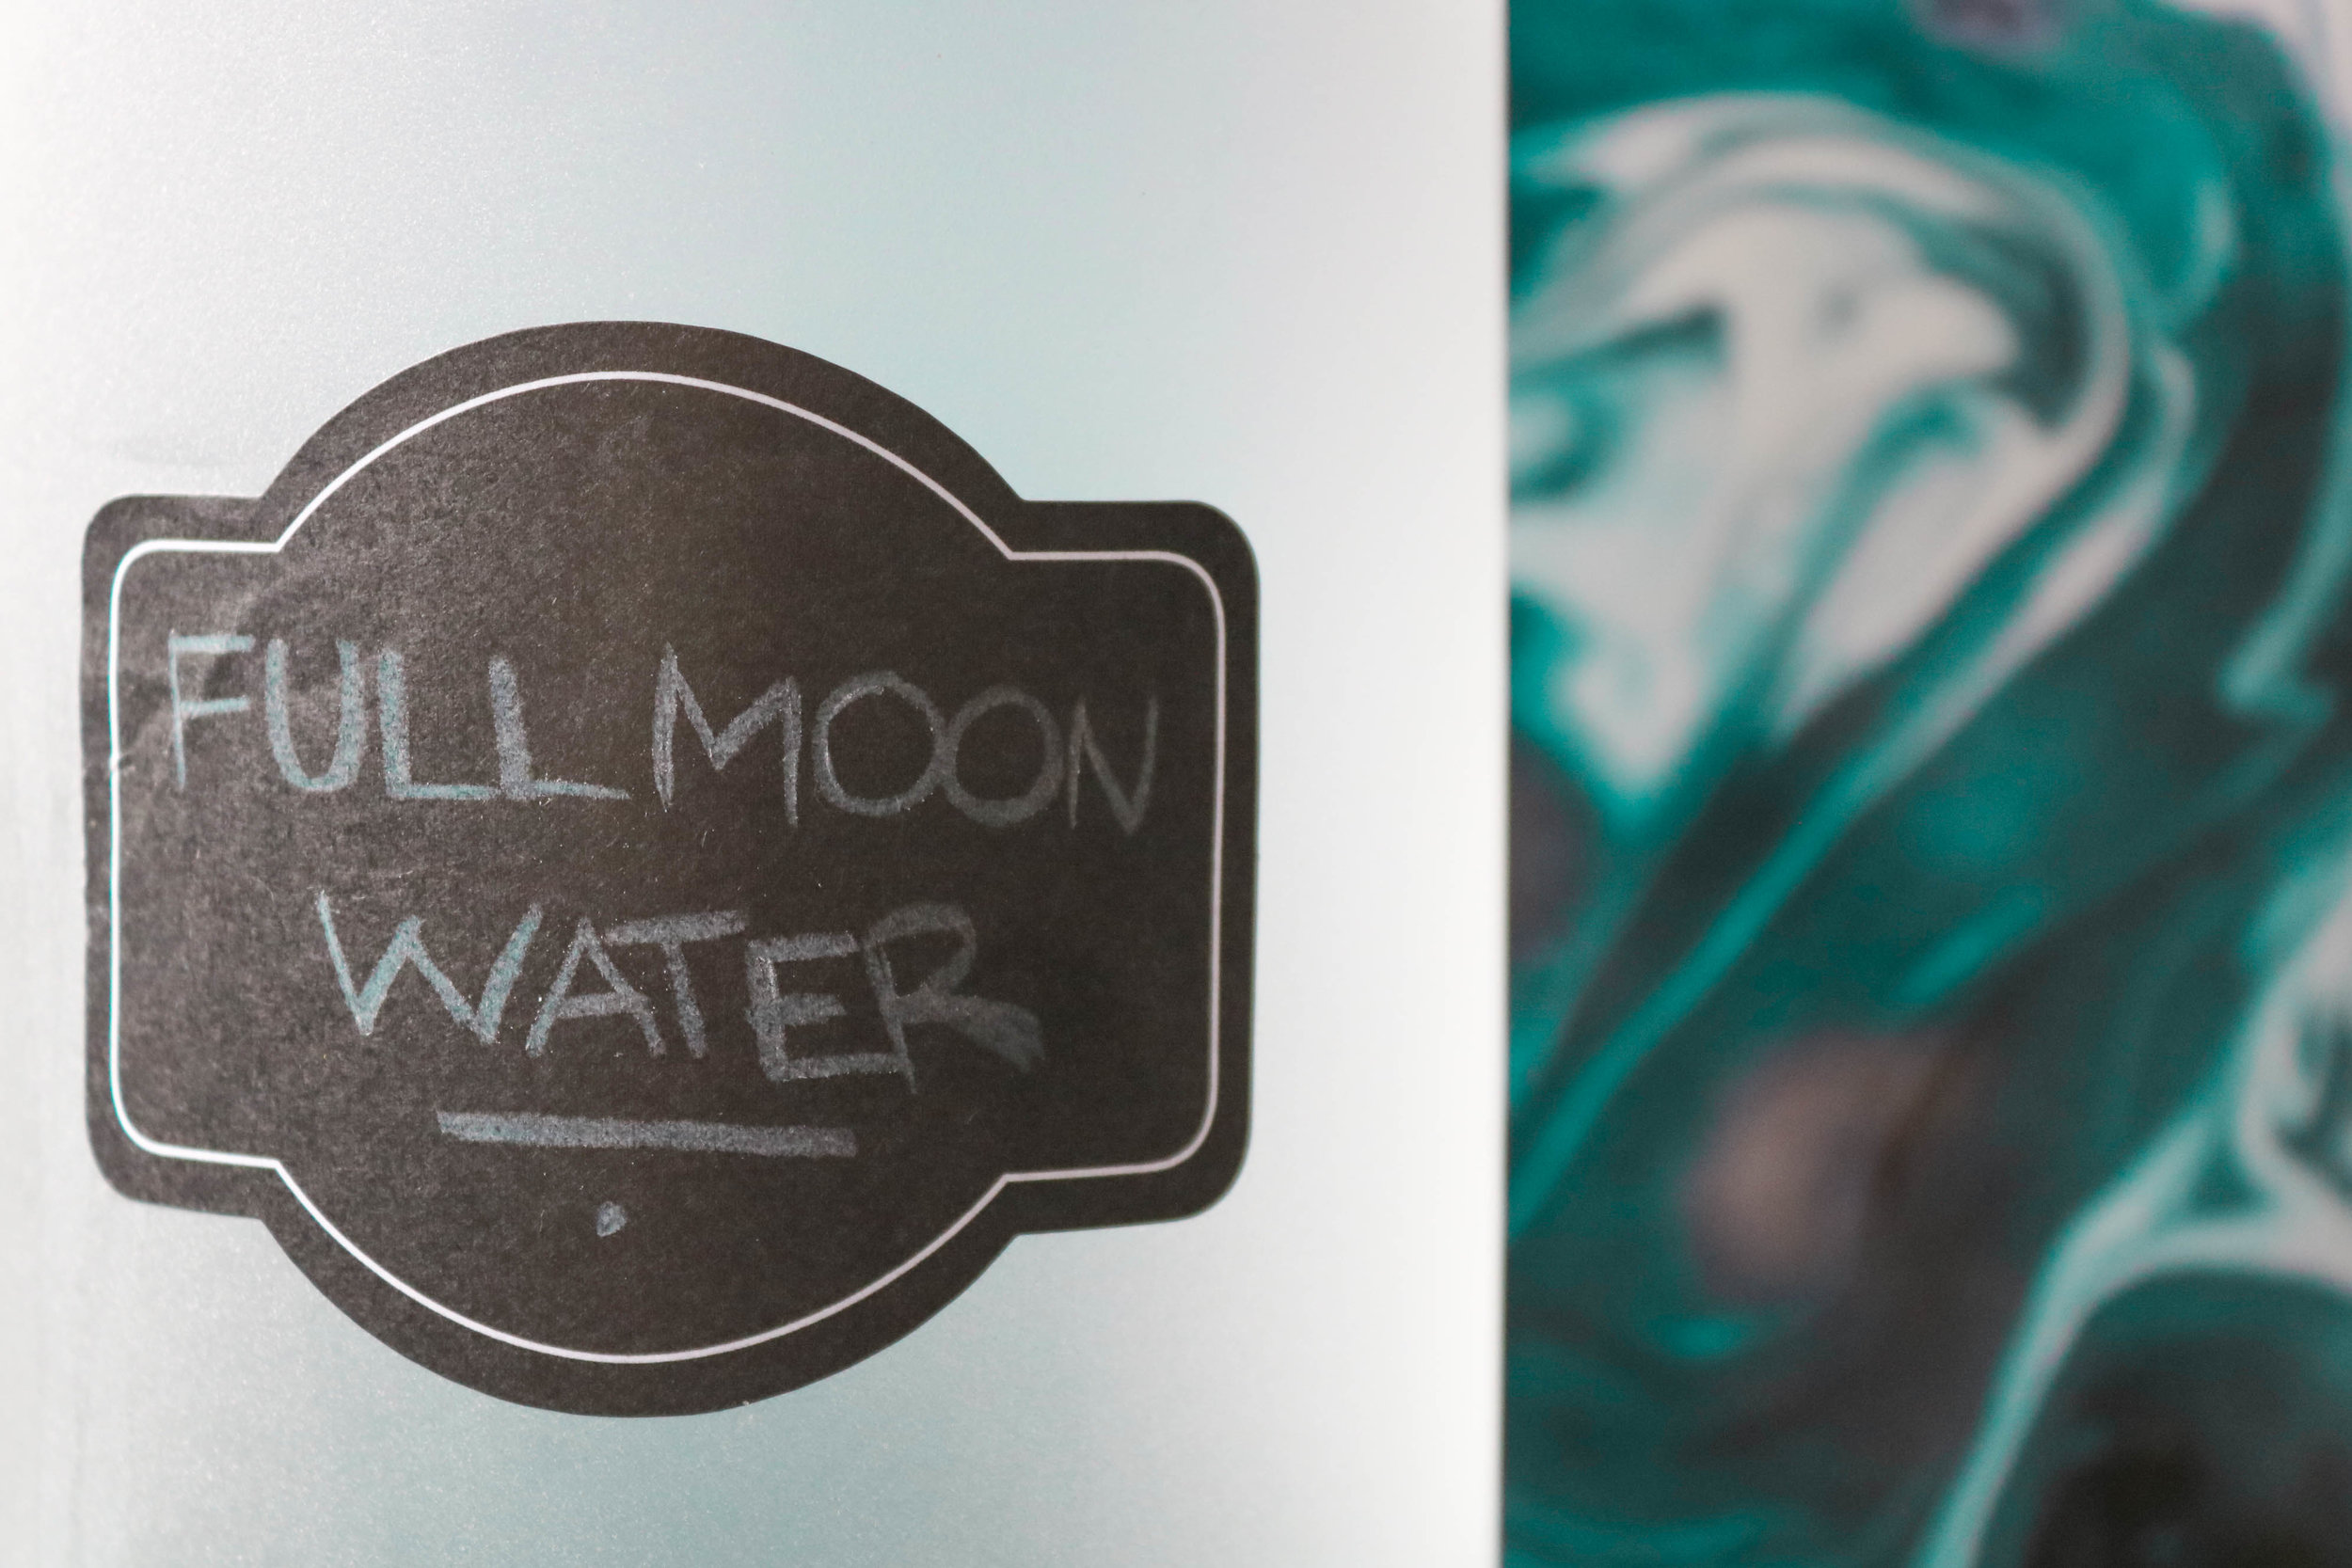 full_moon_water.jpg